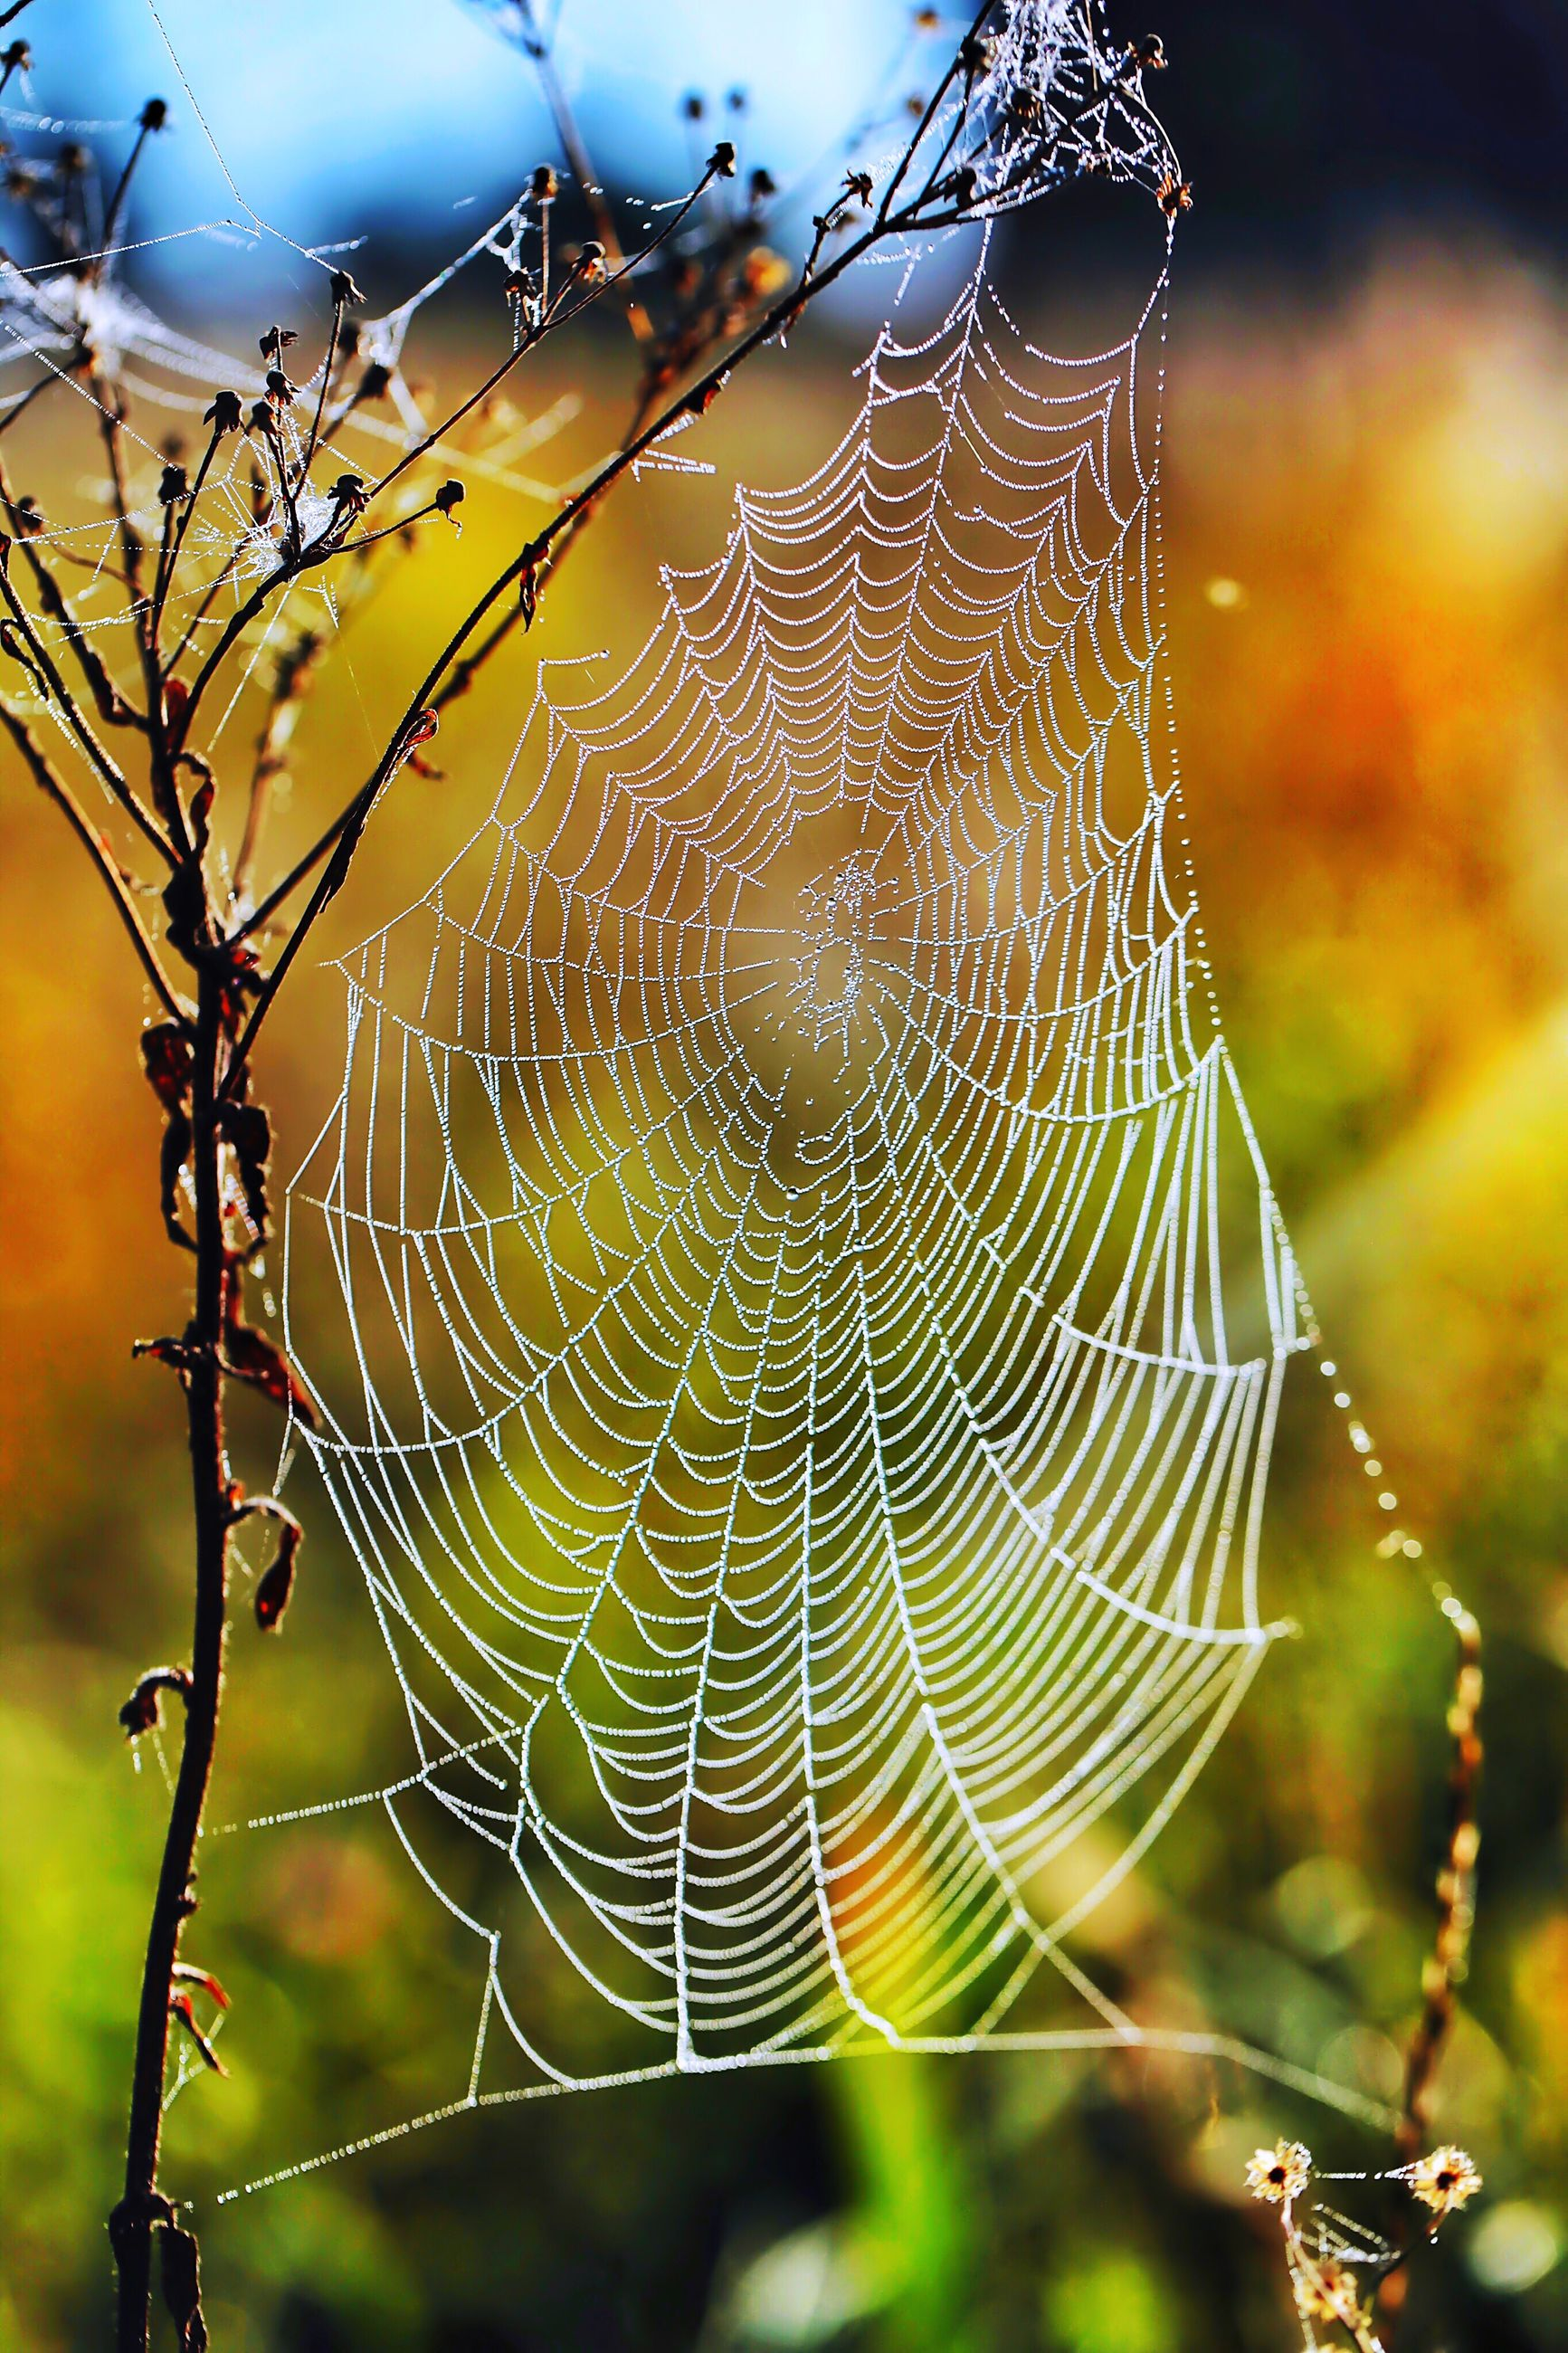 spider web, fragility, natural pattern, close-up, wet, drop, focus on foreground, water, nature, dew, pattern, detail, complexity, stem, beauty in nature, intricacy, plant, day, freshness, animal markings, outdoors, cob web, botany, extreme close-up